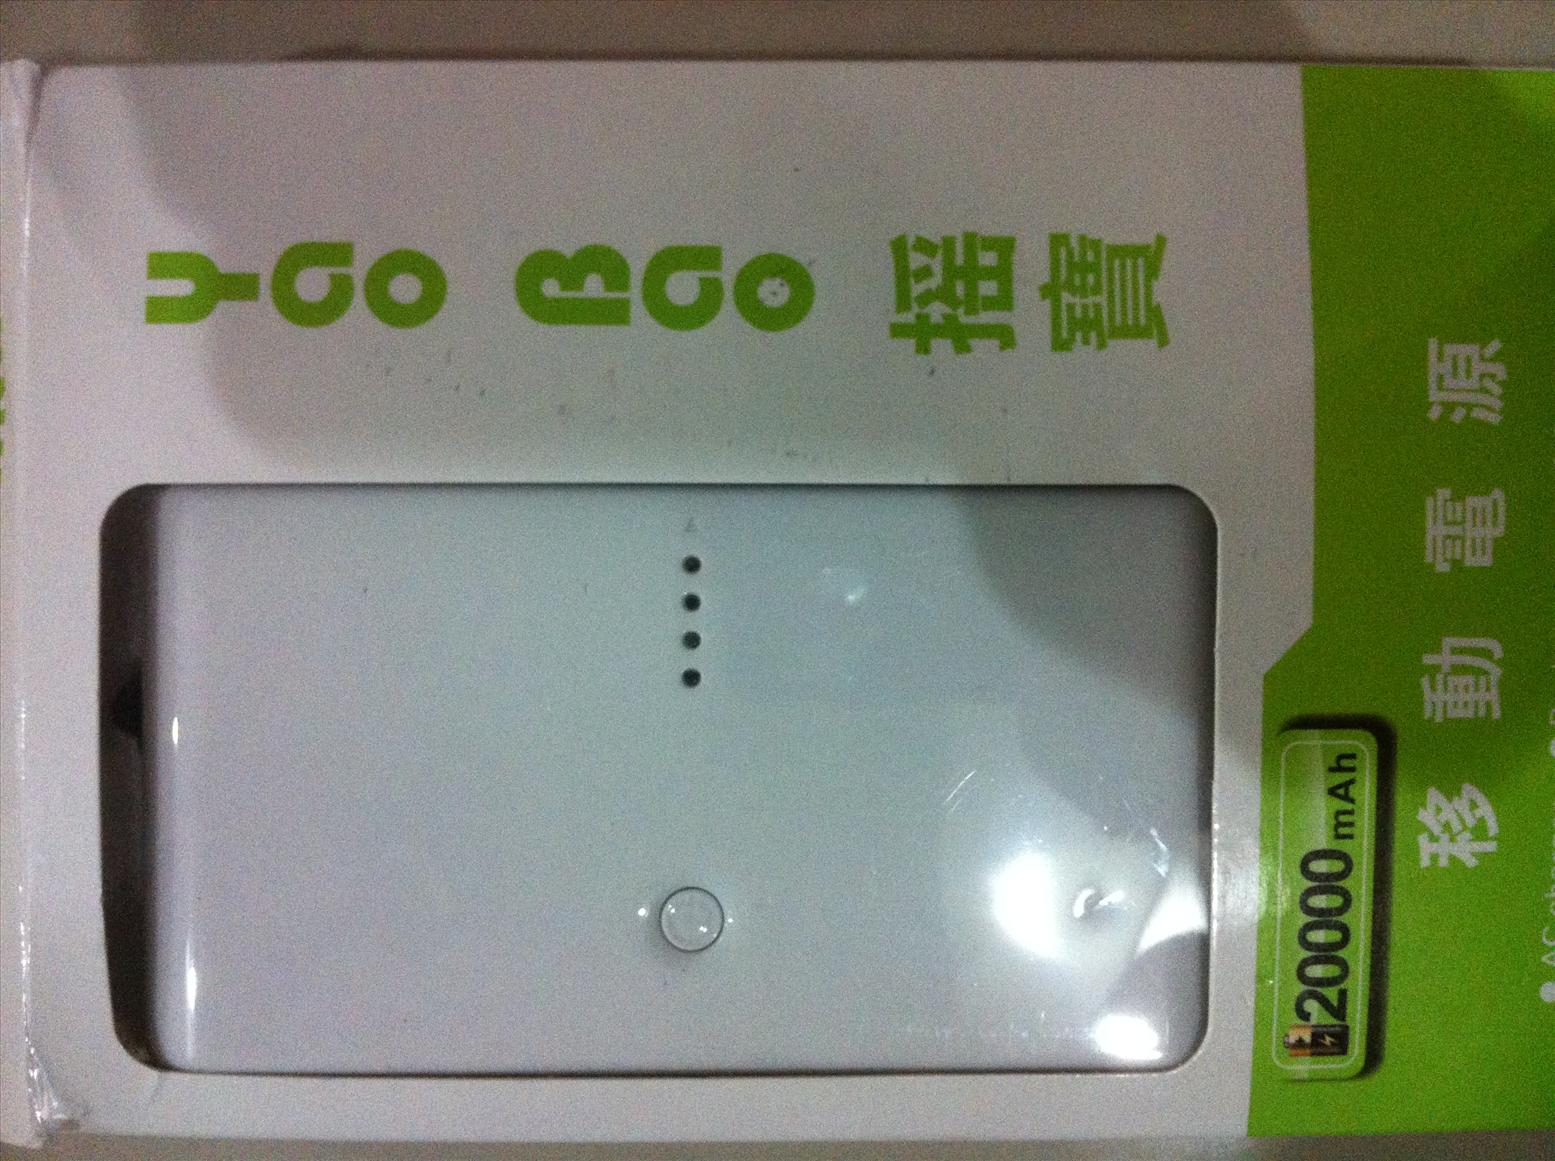 Yaobao 20000mAH Portable Rechargeable Powerbank